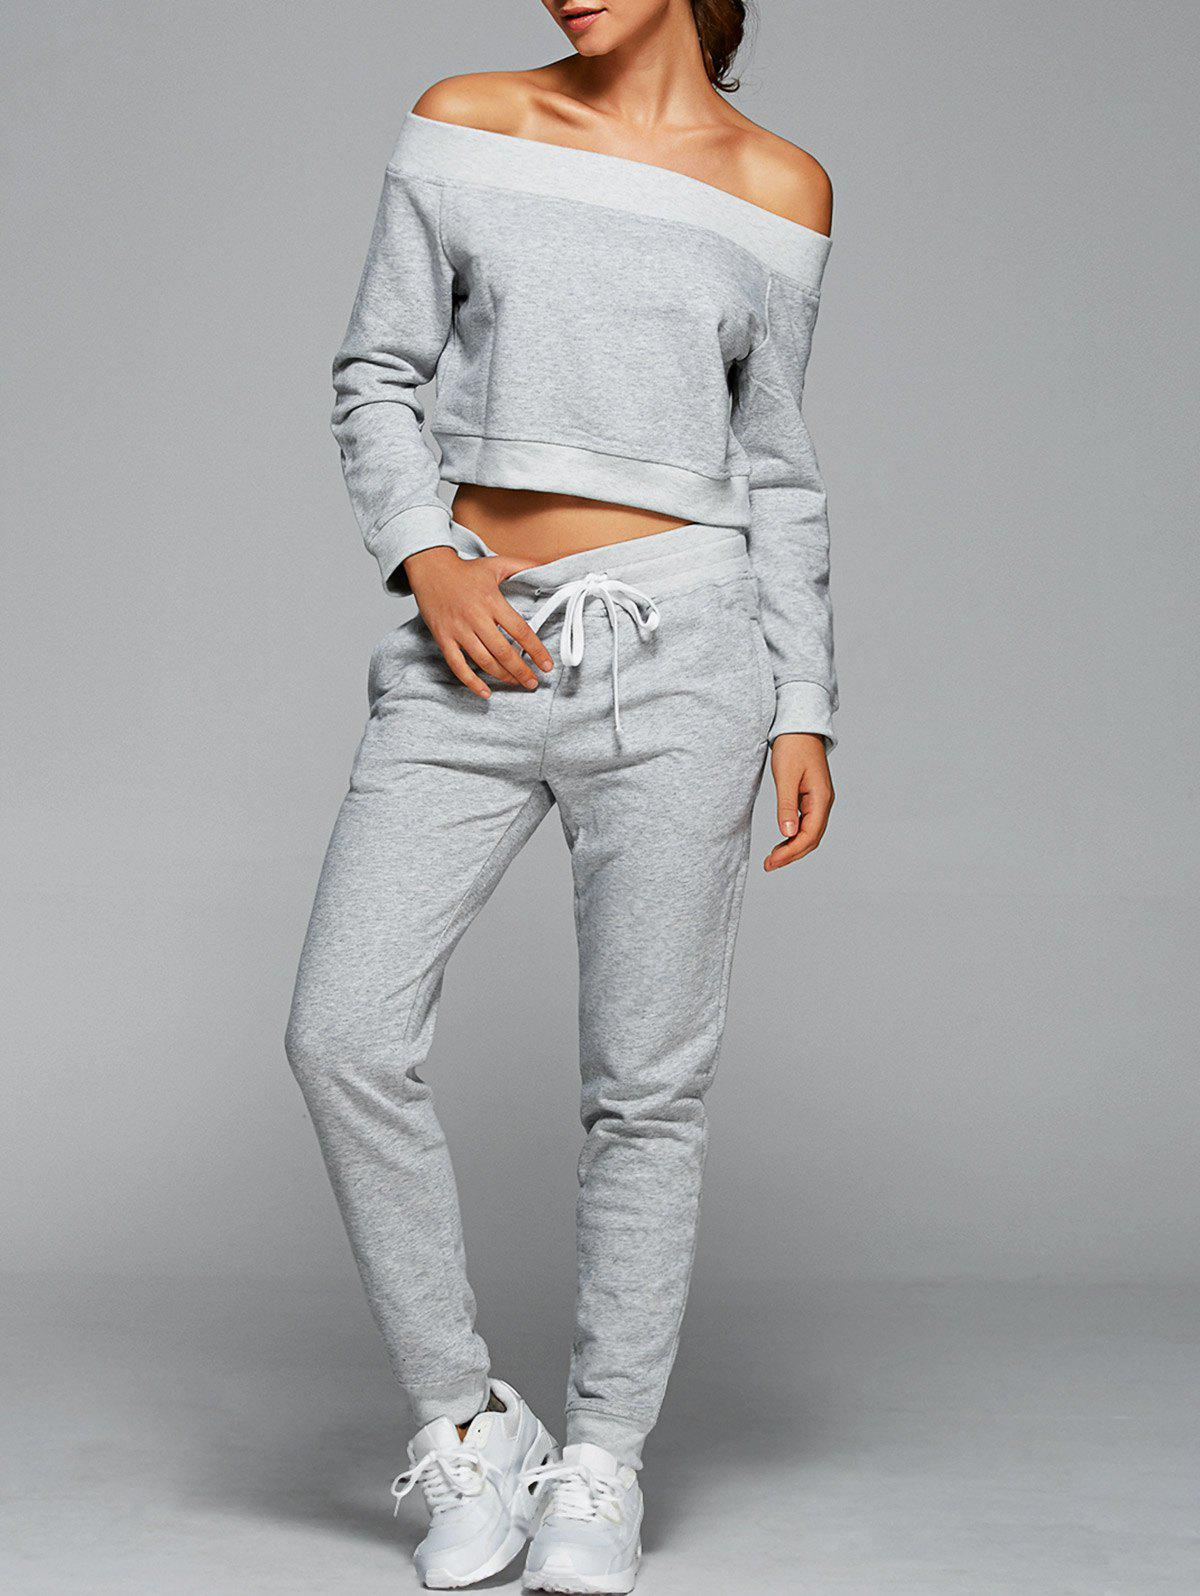 Outfits Off The Shoulder Sweatshirt With Pants Gym Outfits